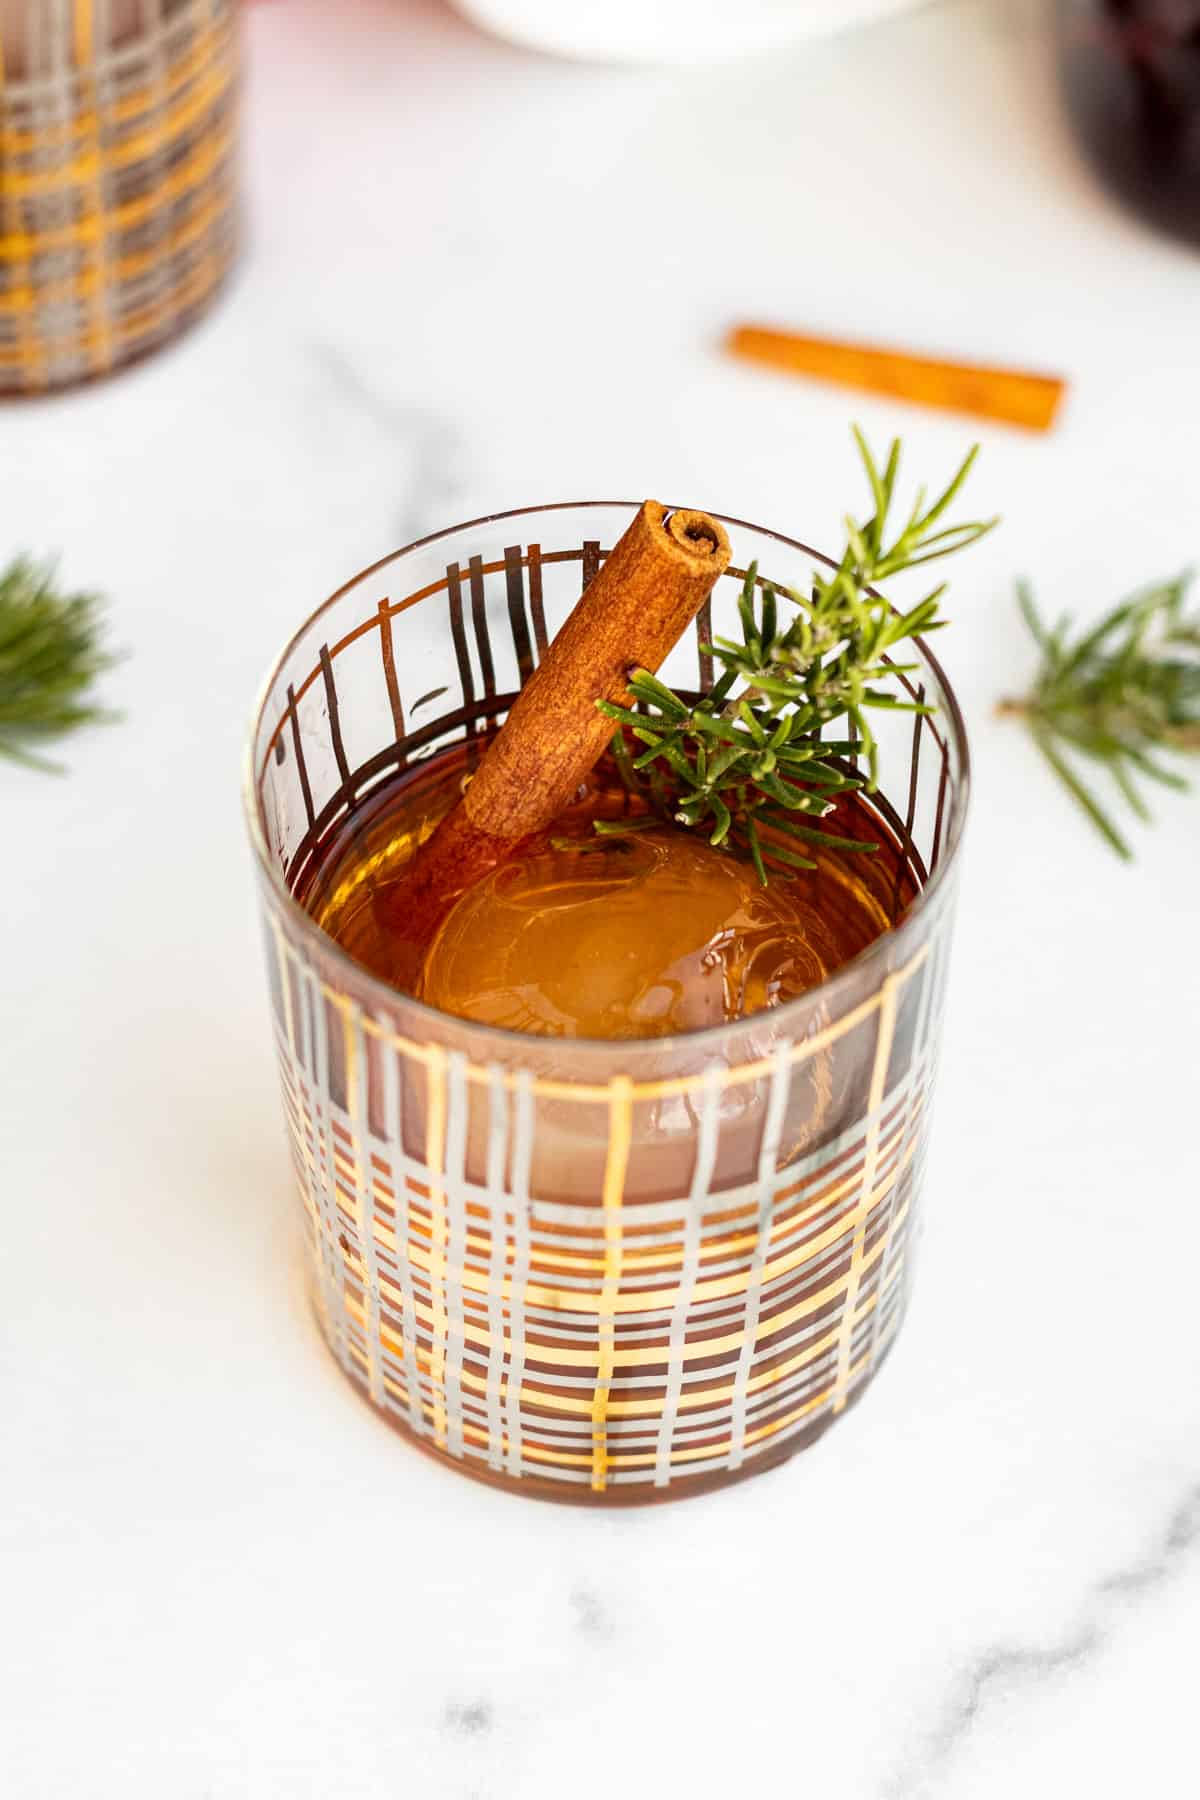 cocktail glass with a clear ice ball and winter old fashioned garnished with rosemary and cinnamon stick sitting on marble counter